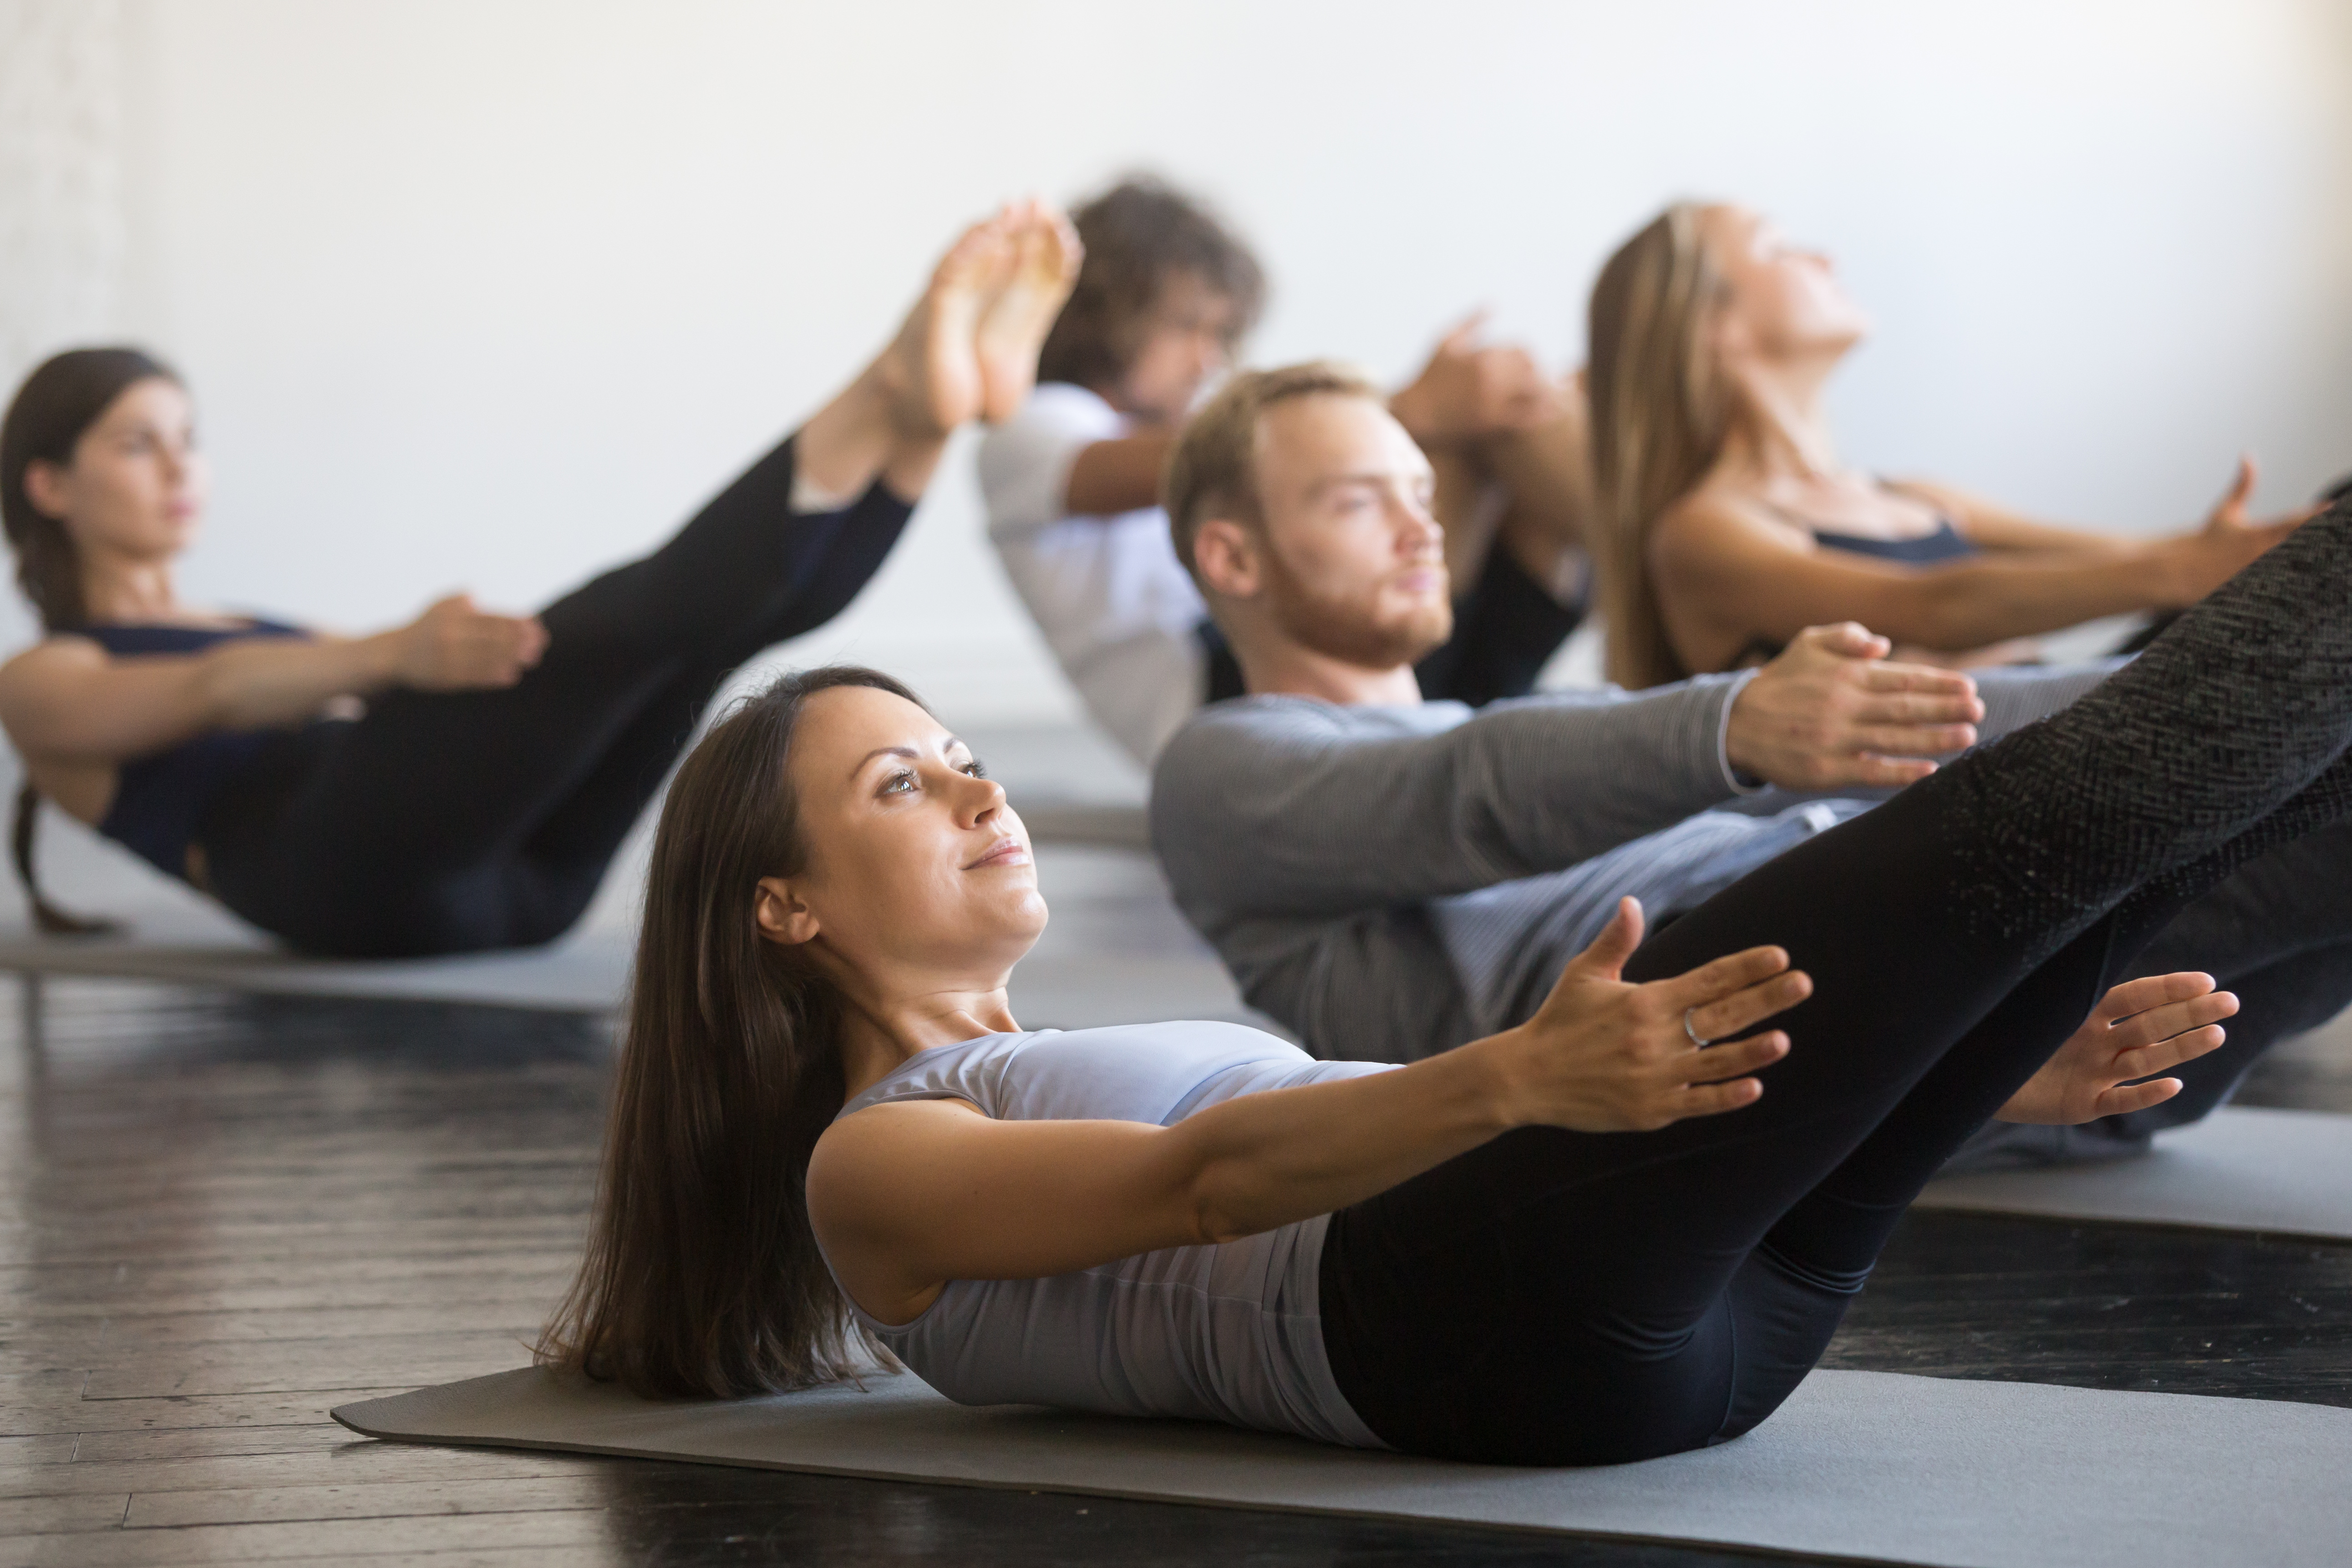 Pilates in Walsall - Pilates Classes Near Me